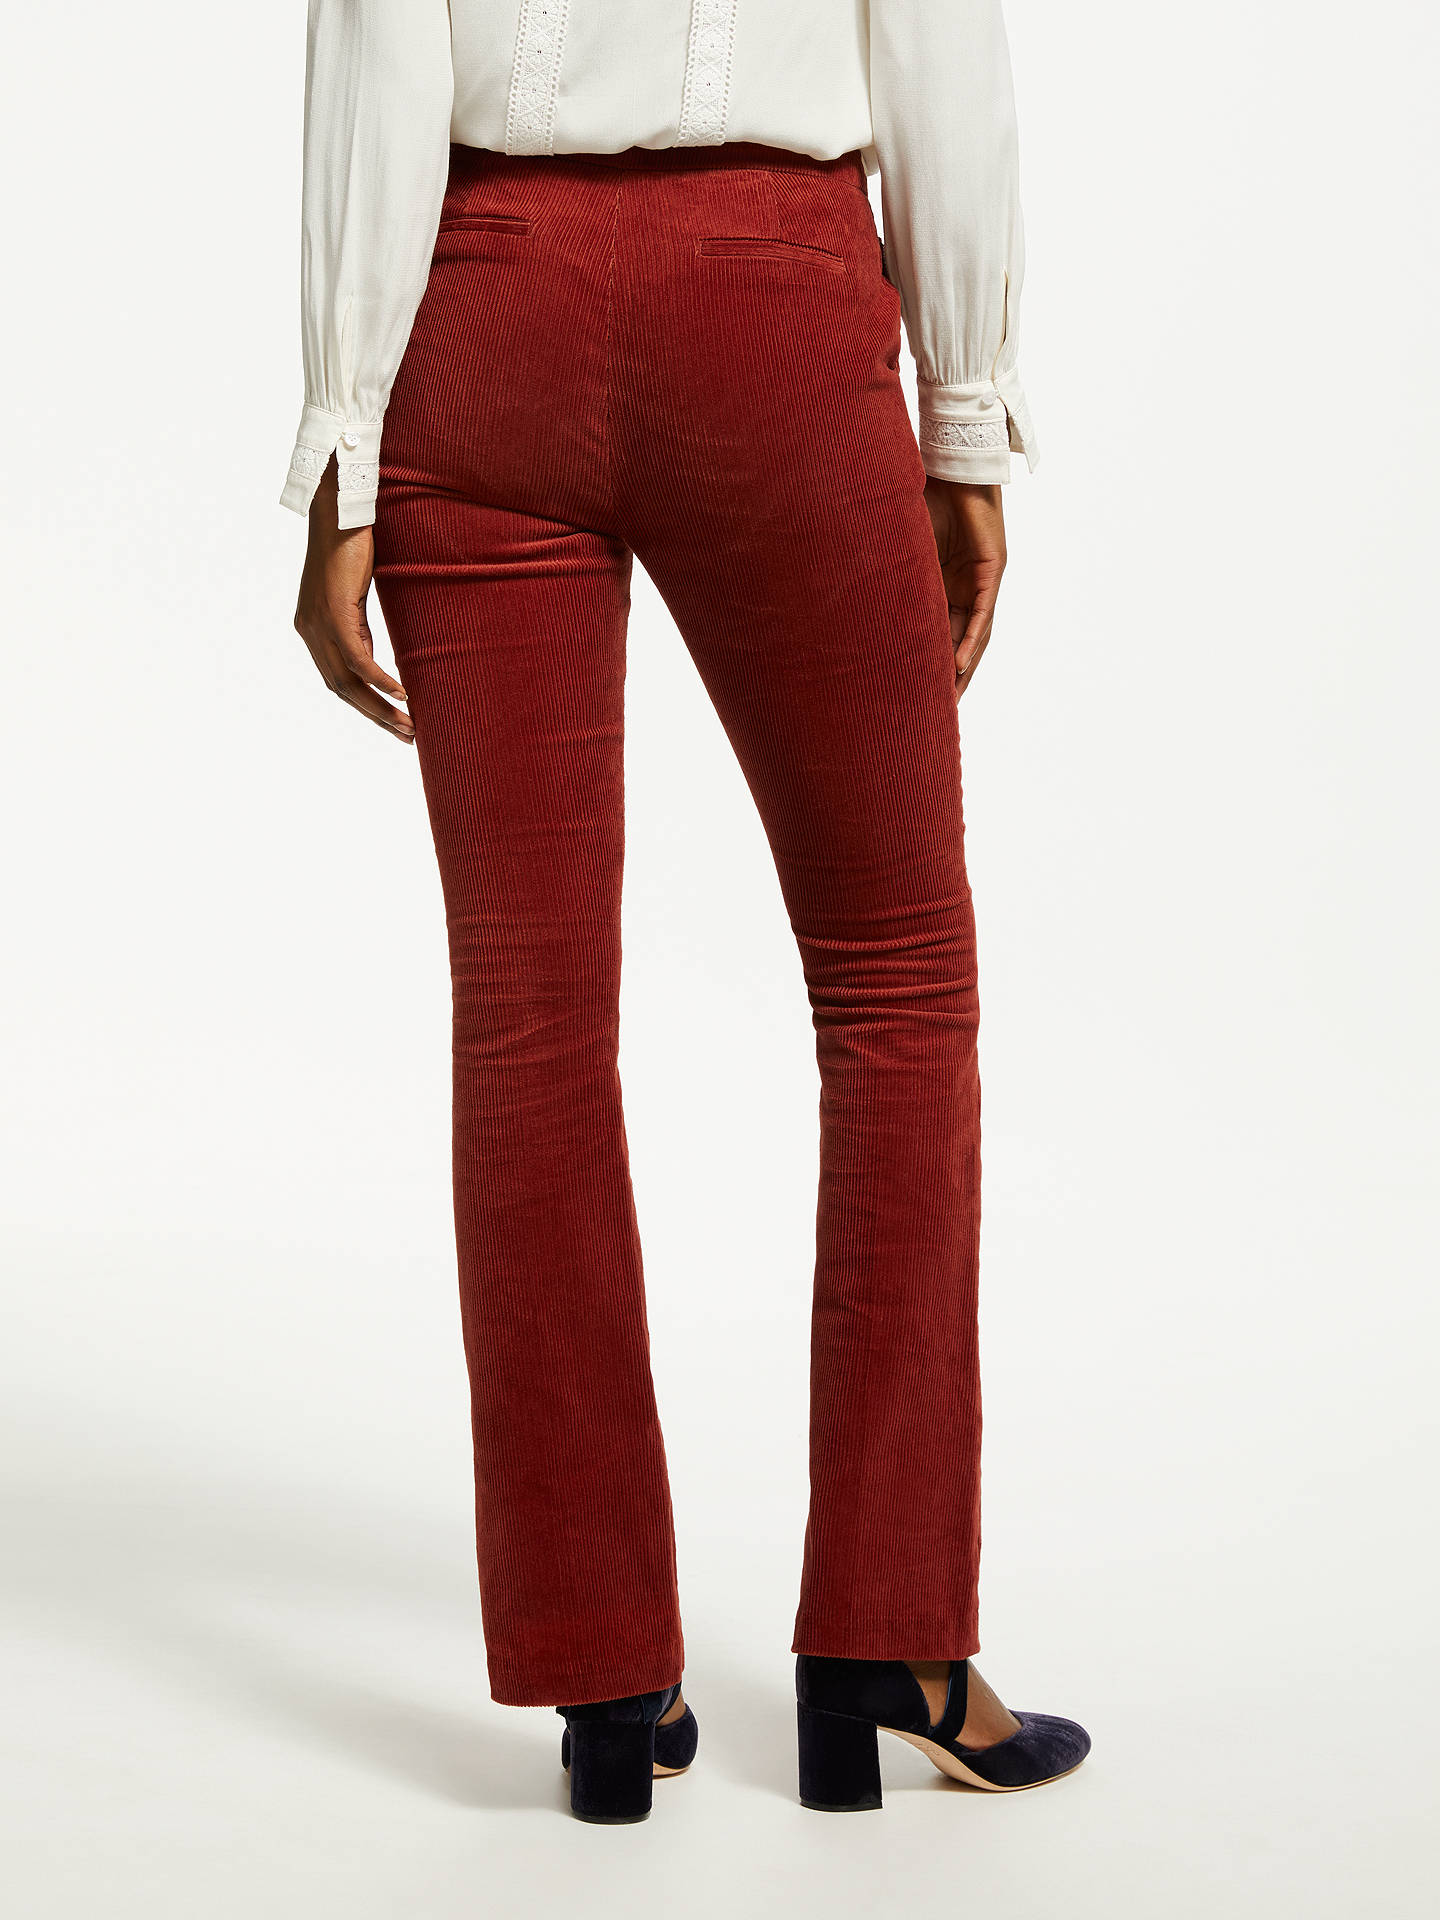 BuyBoden Stirling Cord Skinny Trousers, Conker, 8 Online at johnlewis.com